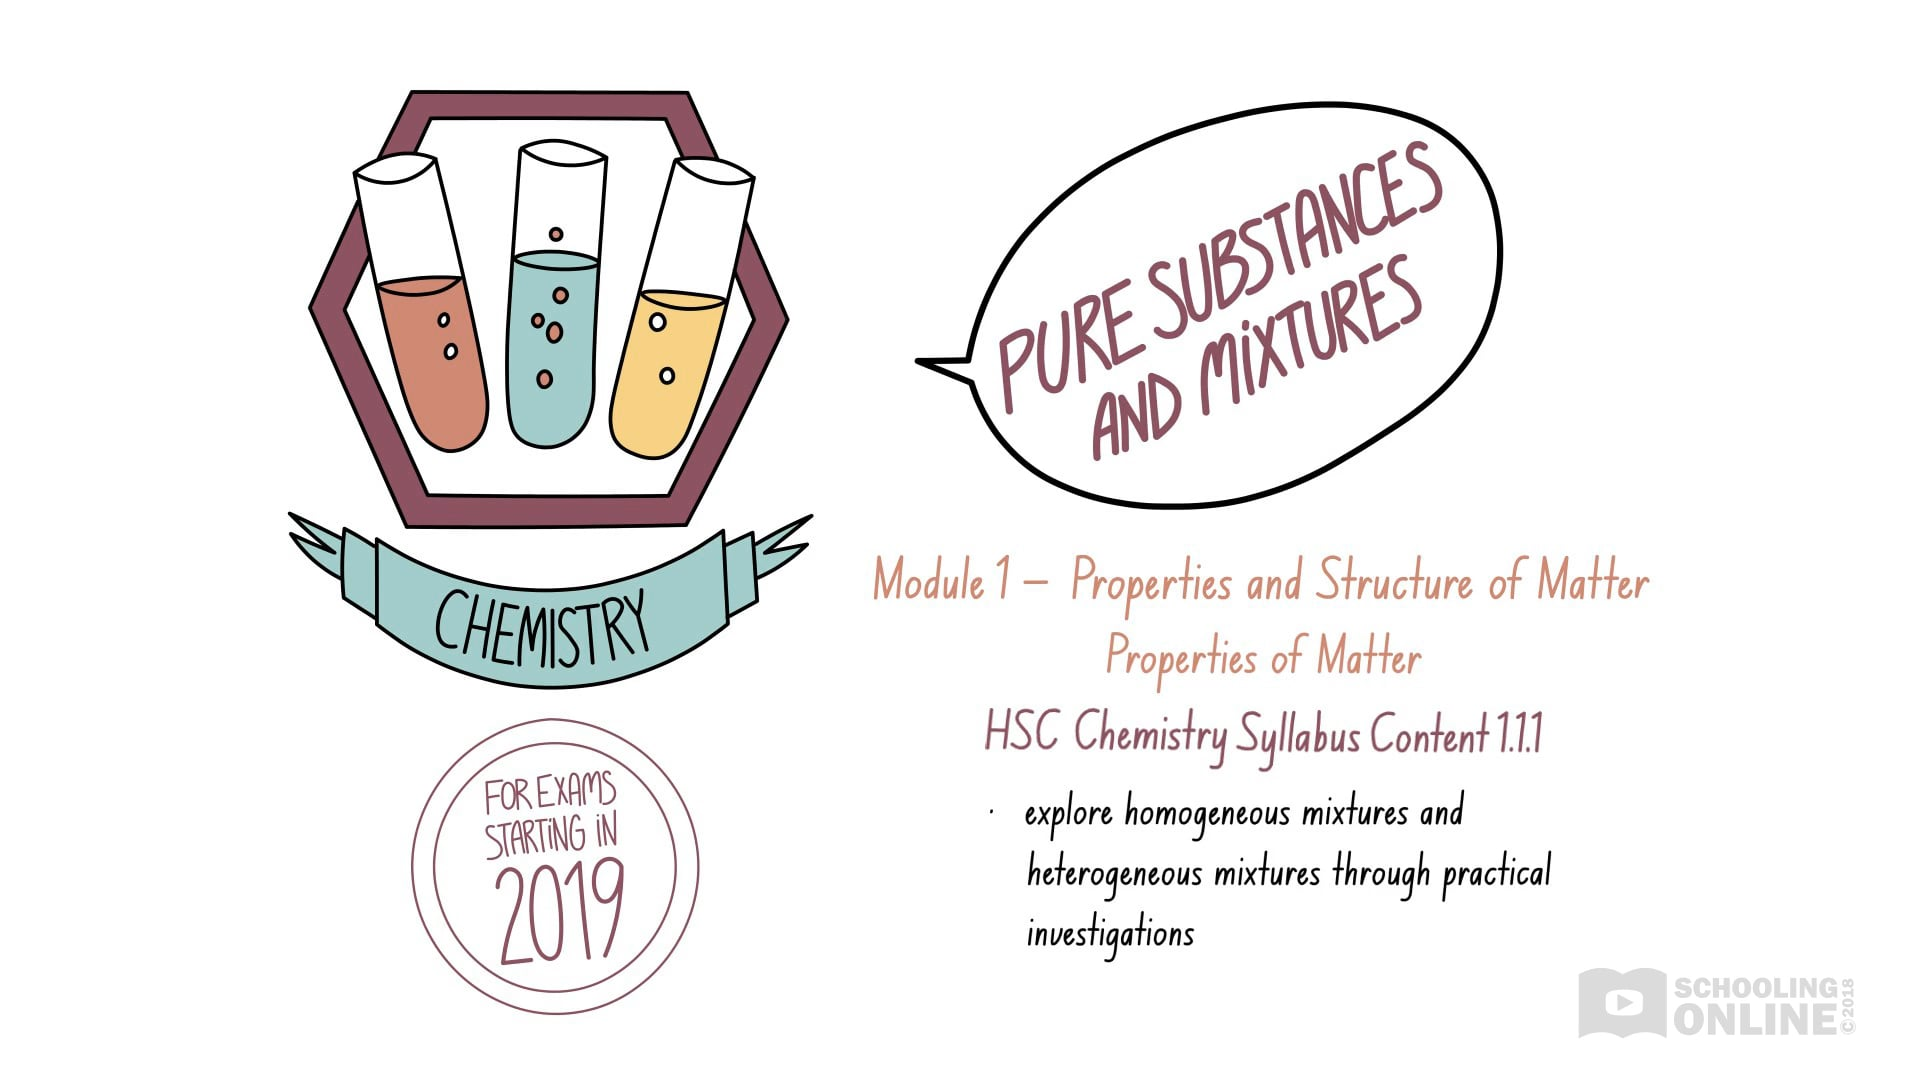 Pure Substances and Mixtures - Properties of Matter